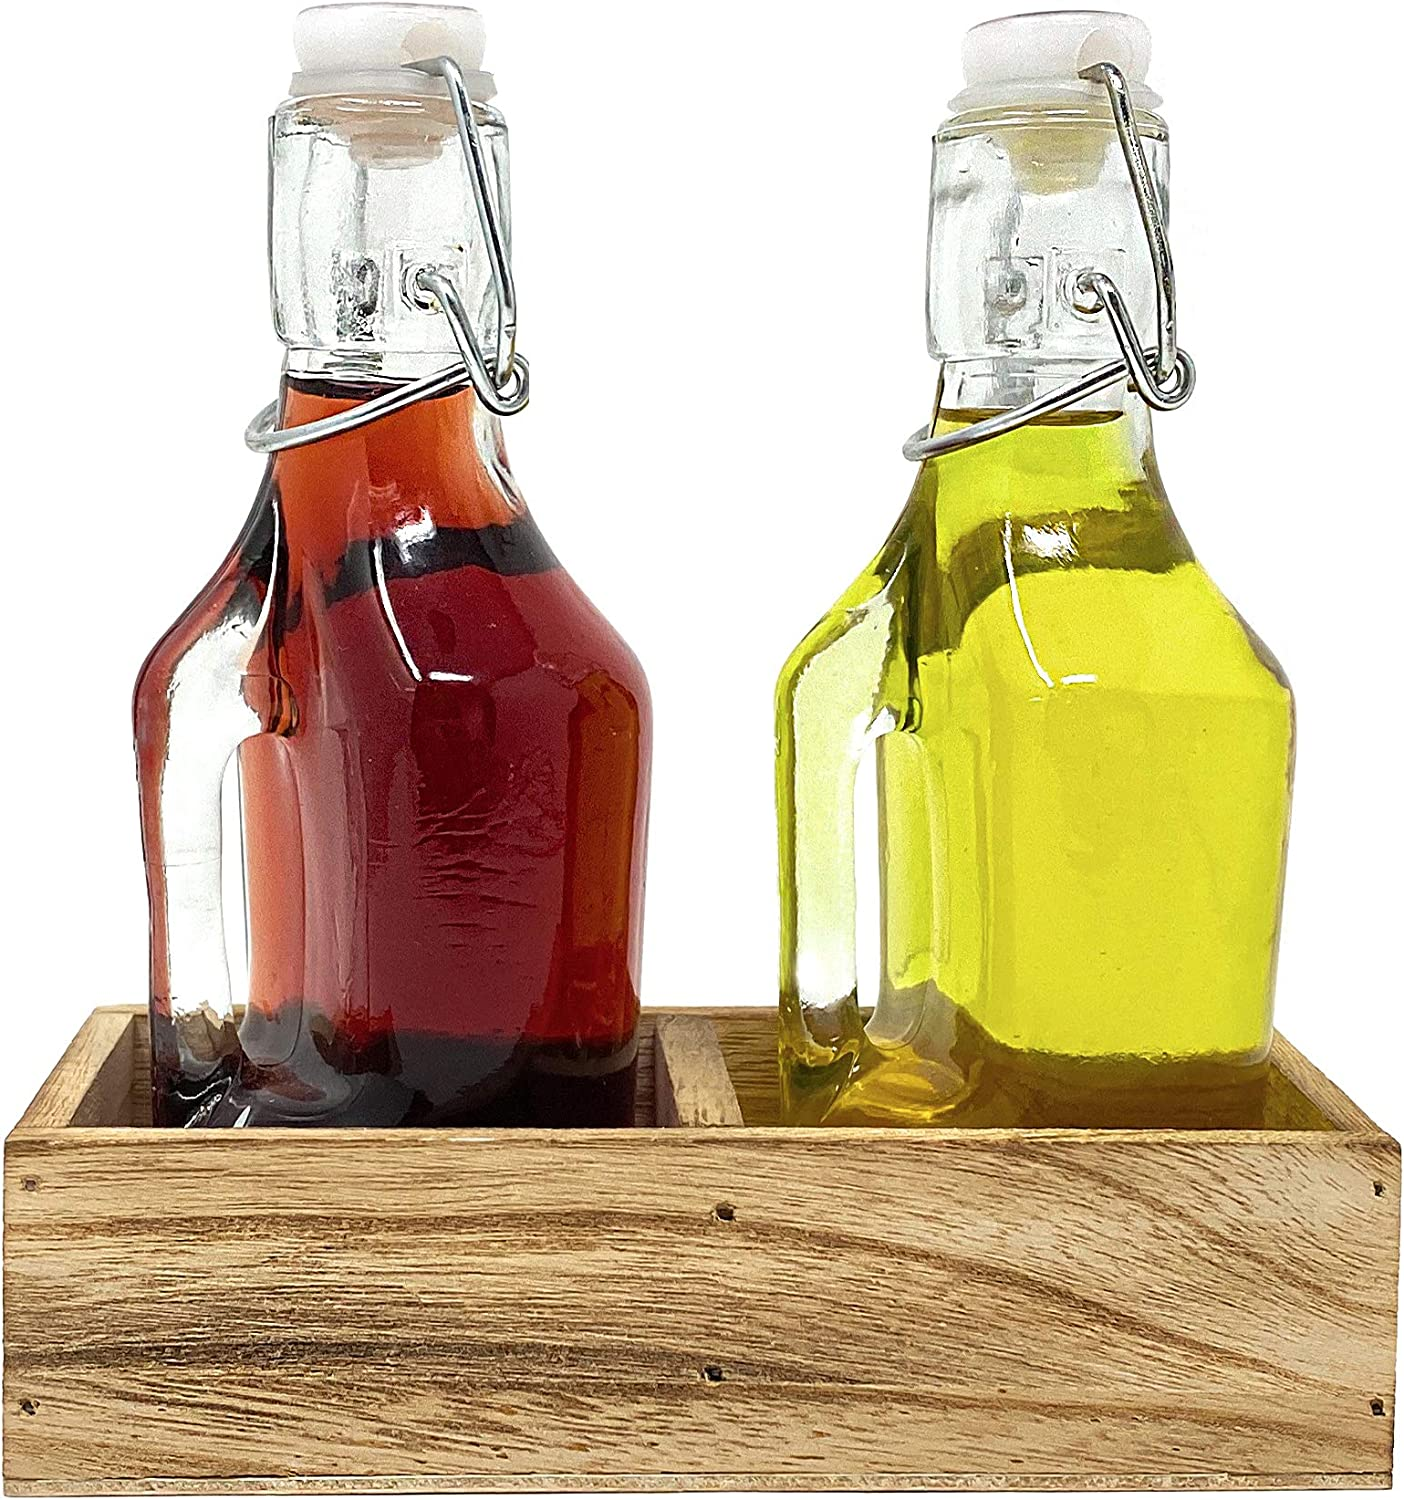 Oil New popularity low-pricing and Vinegar Dispenser Set Cruet Top with Swing Glass Bottles